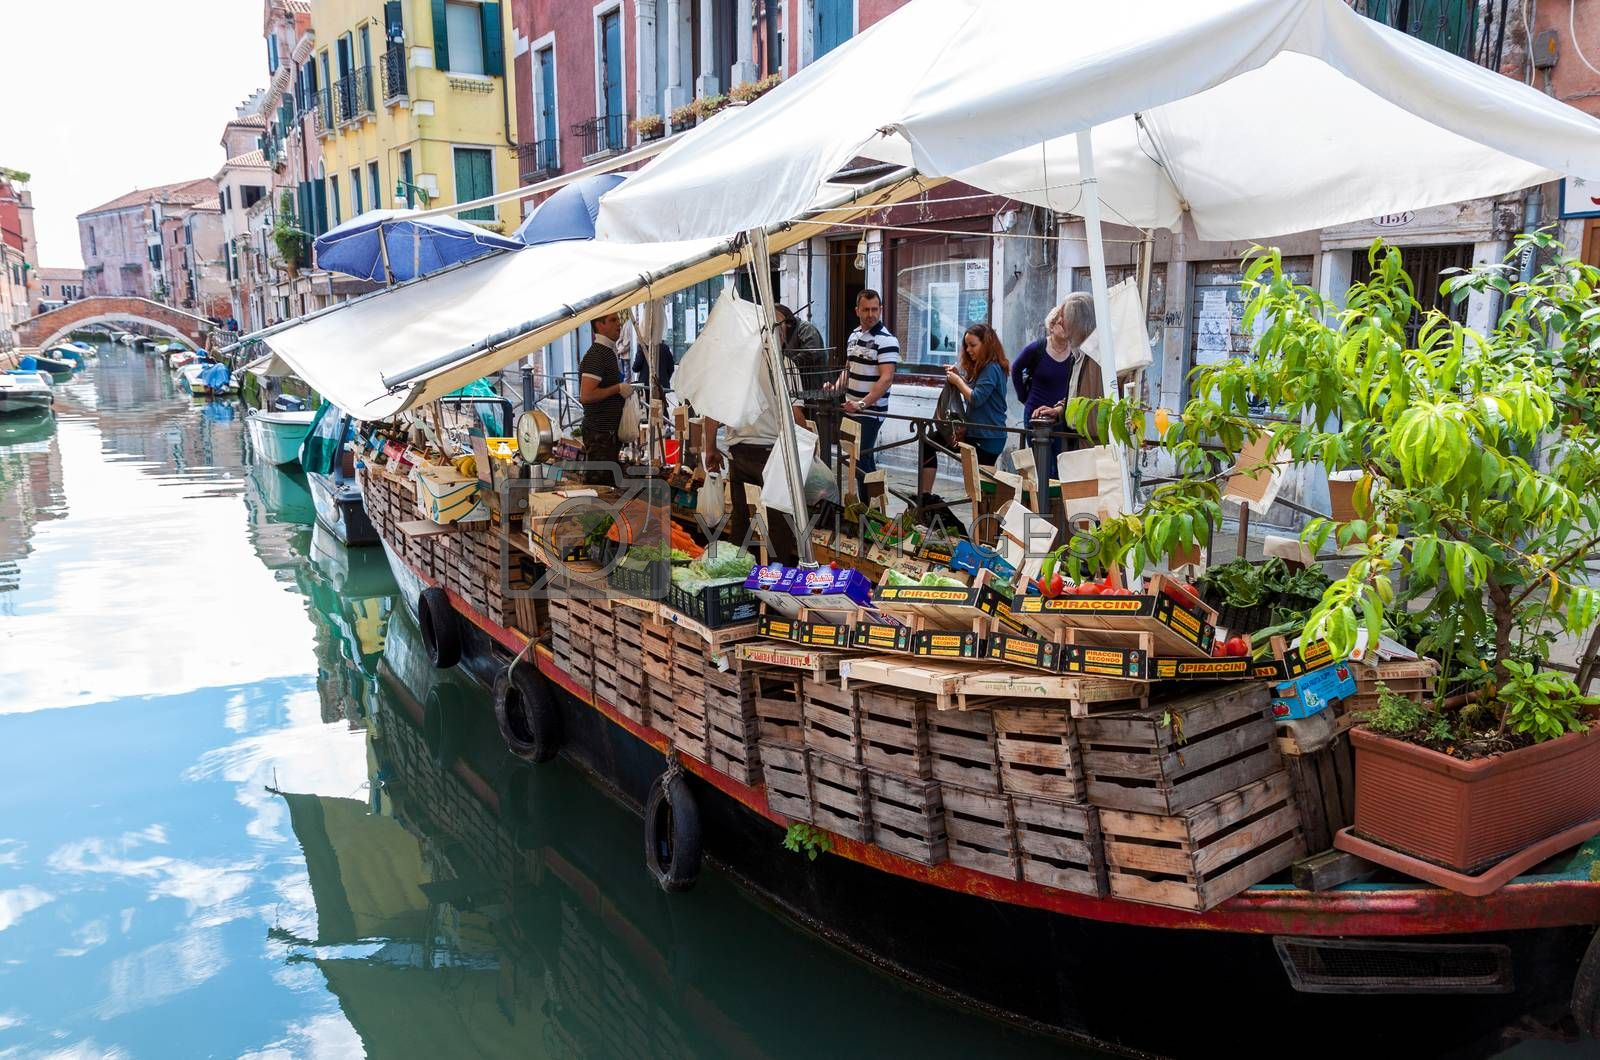 VENICE, ITALY - MAY 27, 2015: Floating market selling fruits and vegetables at Via Giuseppe Garibaldi in Venice, Italy